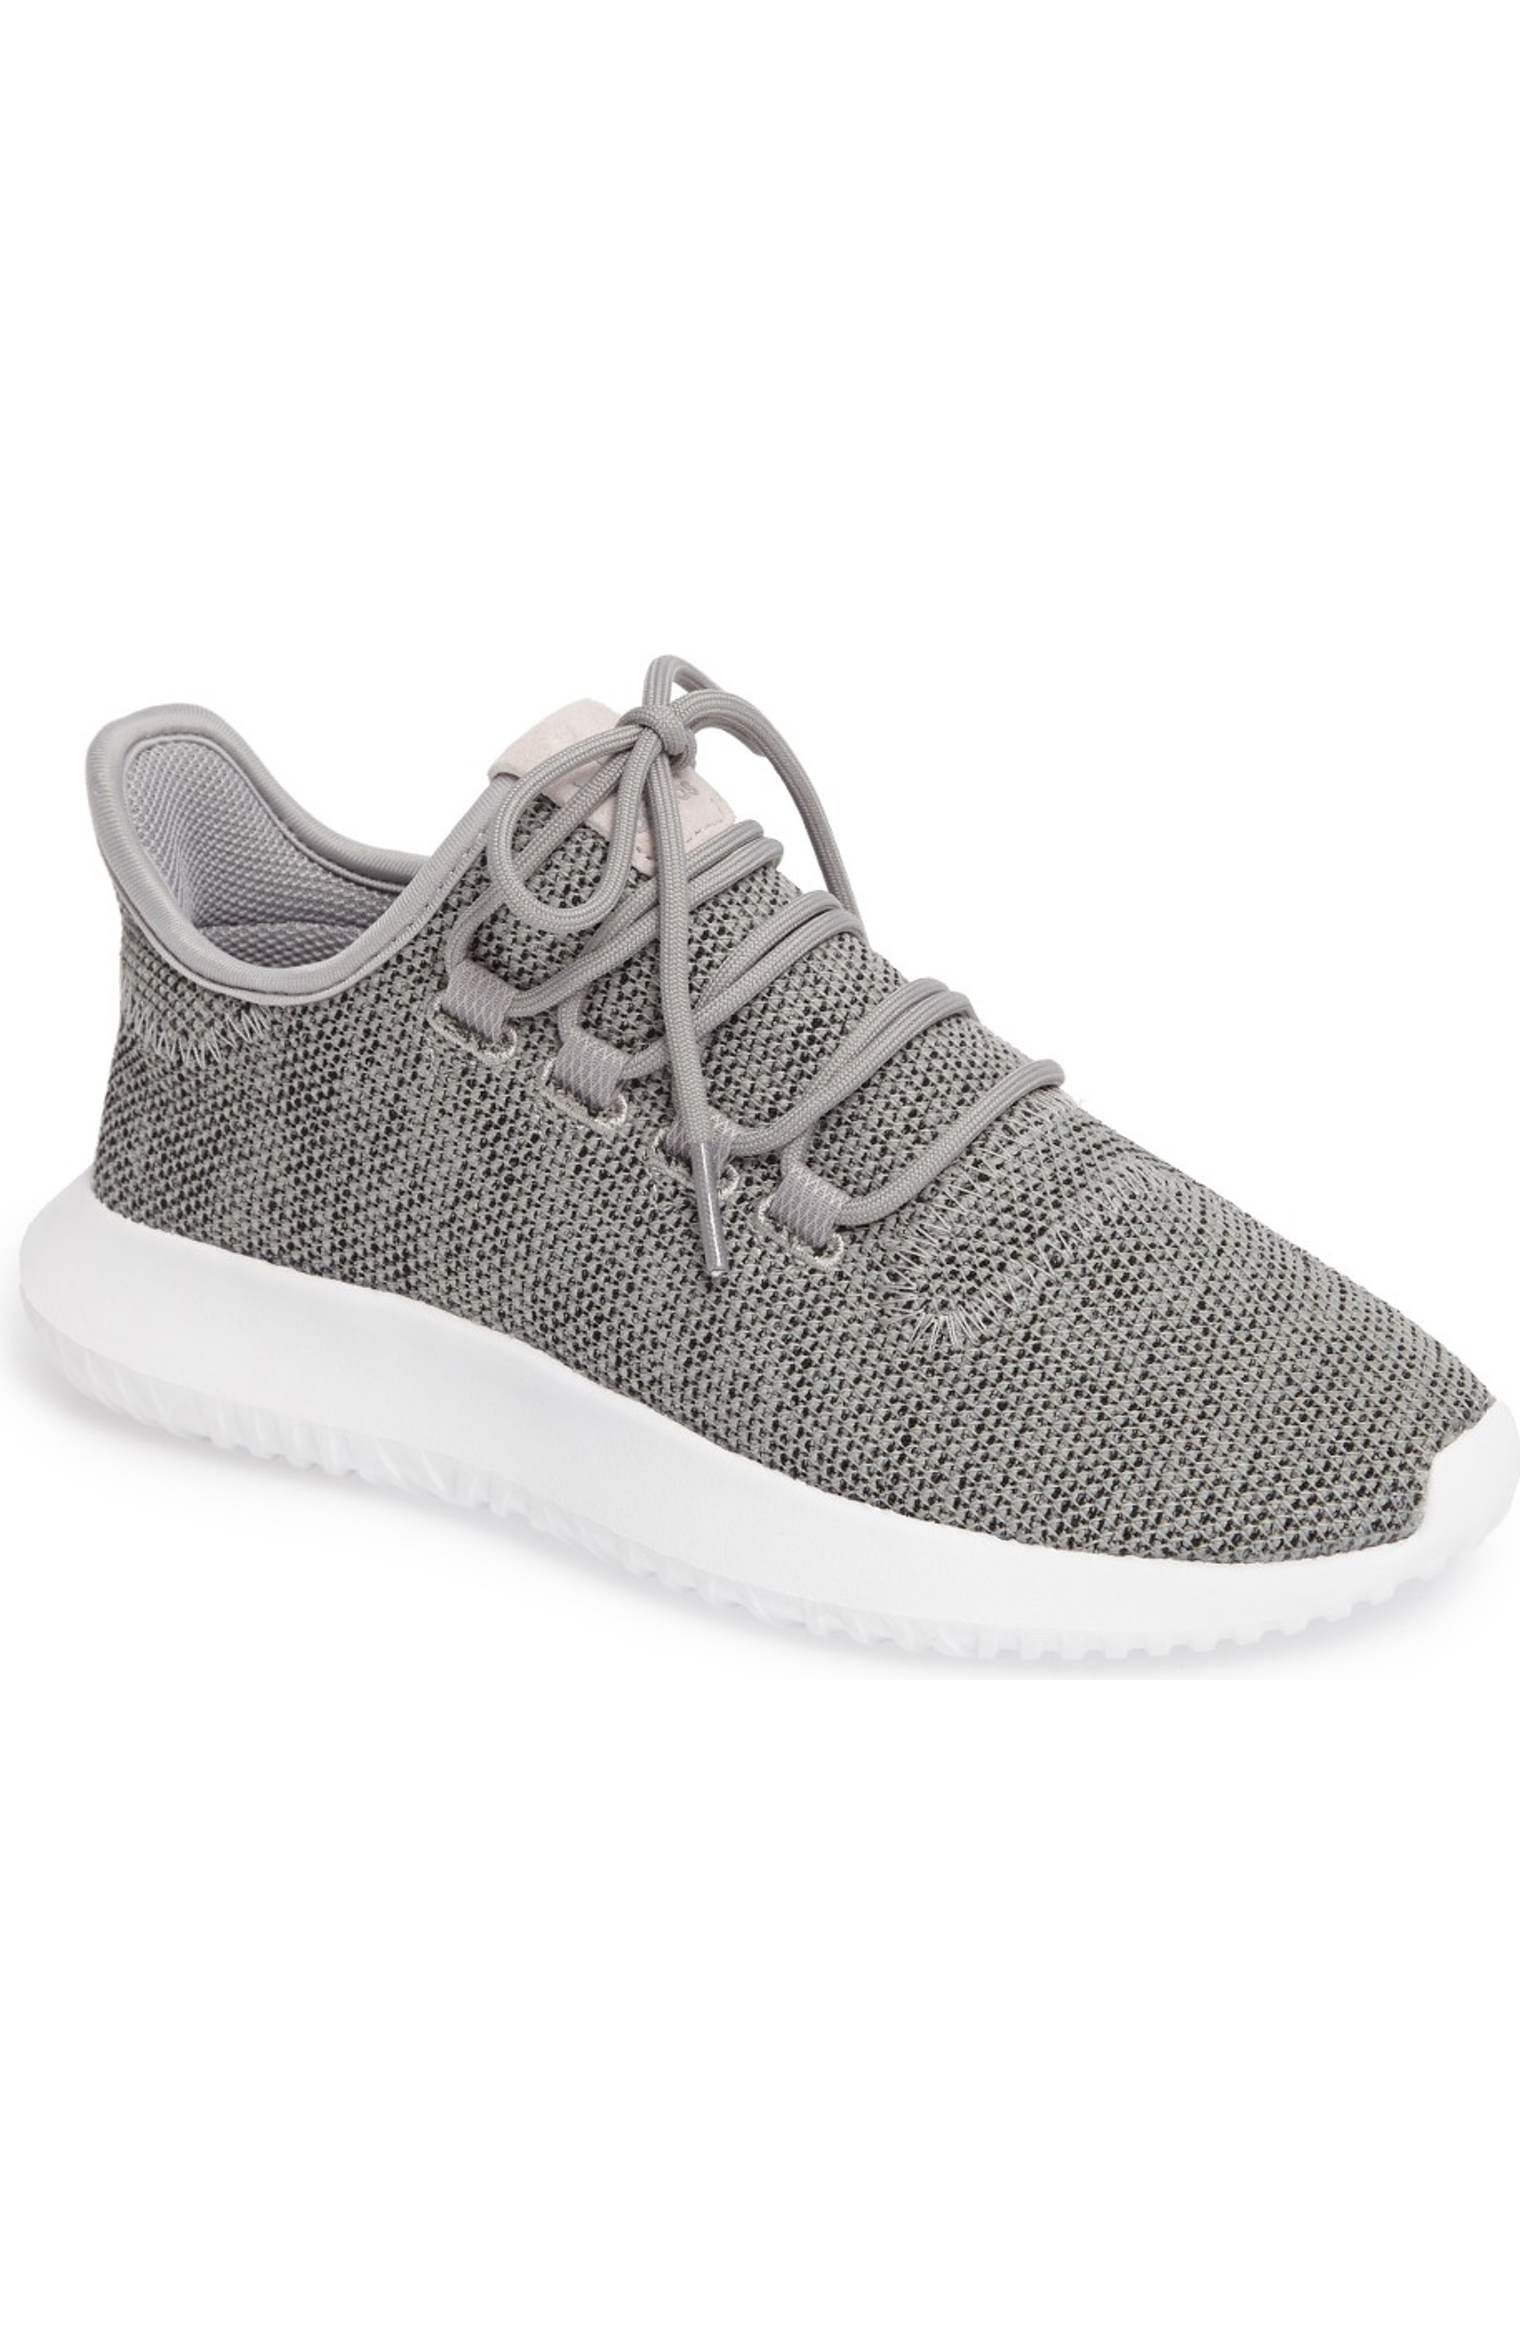 buy popular 3eaa0 e5747 Main Image - adidas Tubular Shadow Sneaker (Women) httpstmblr.